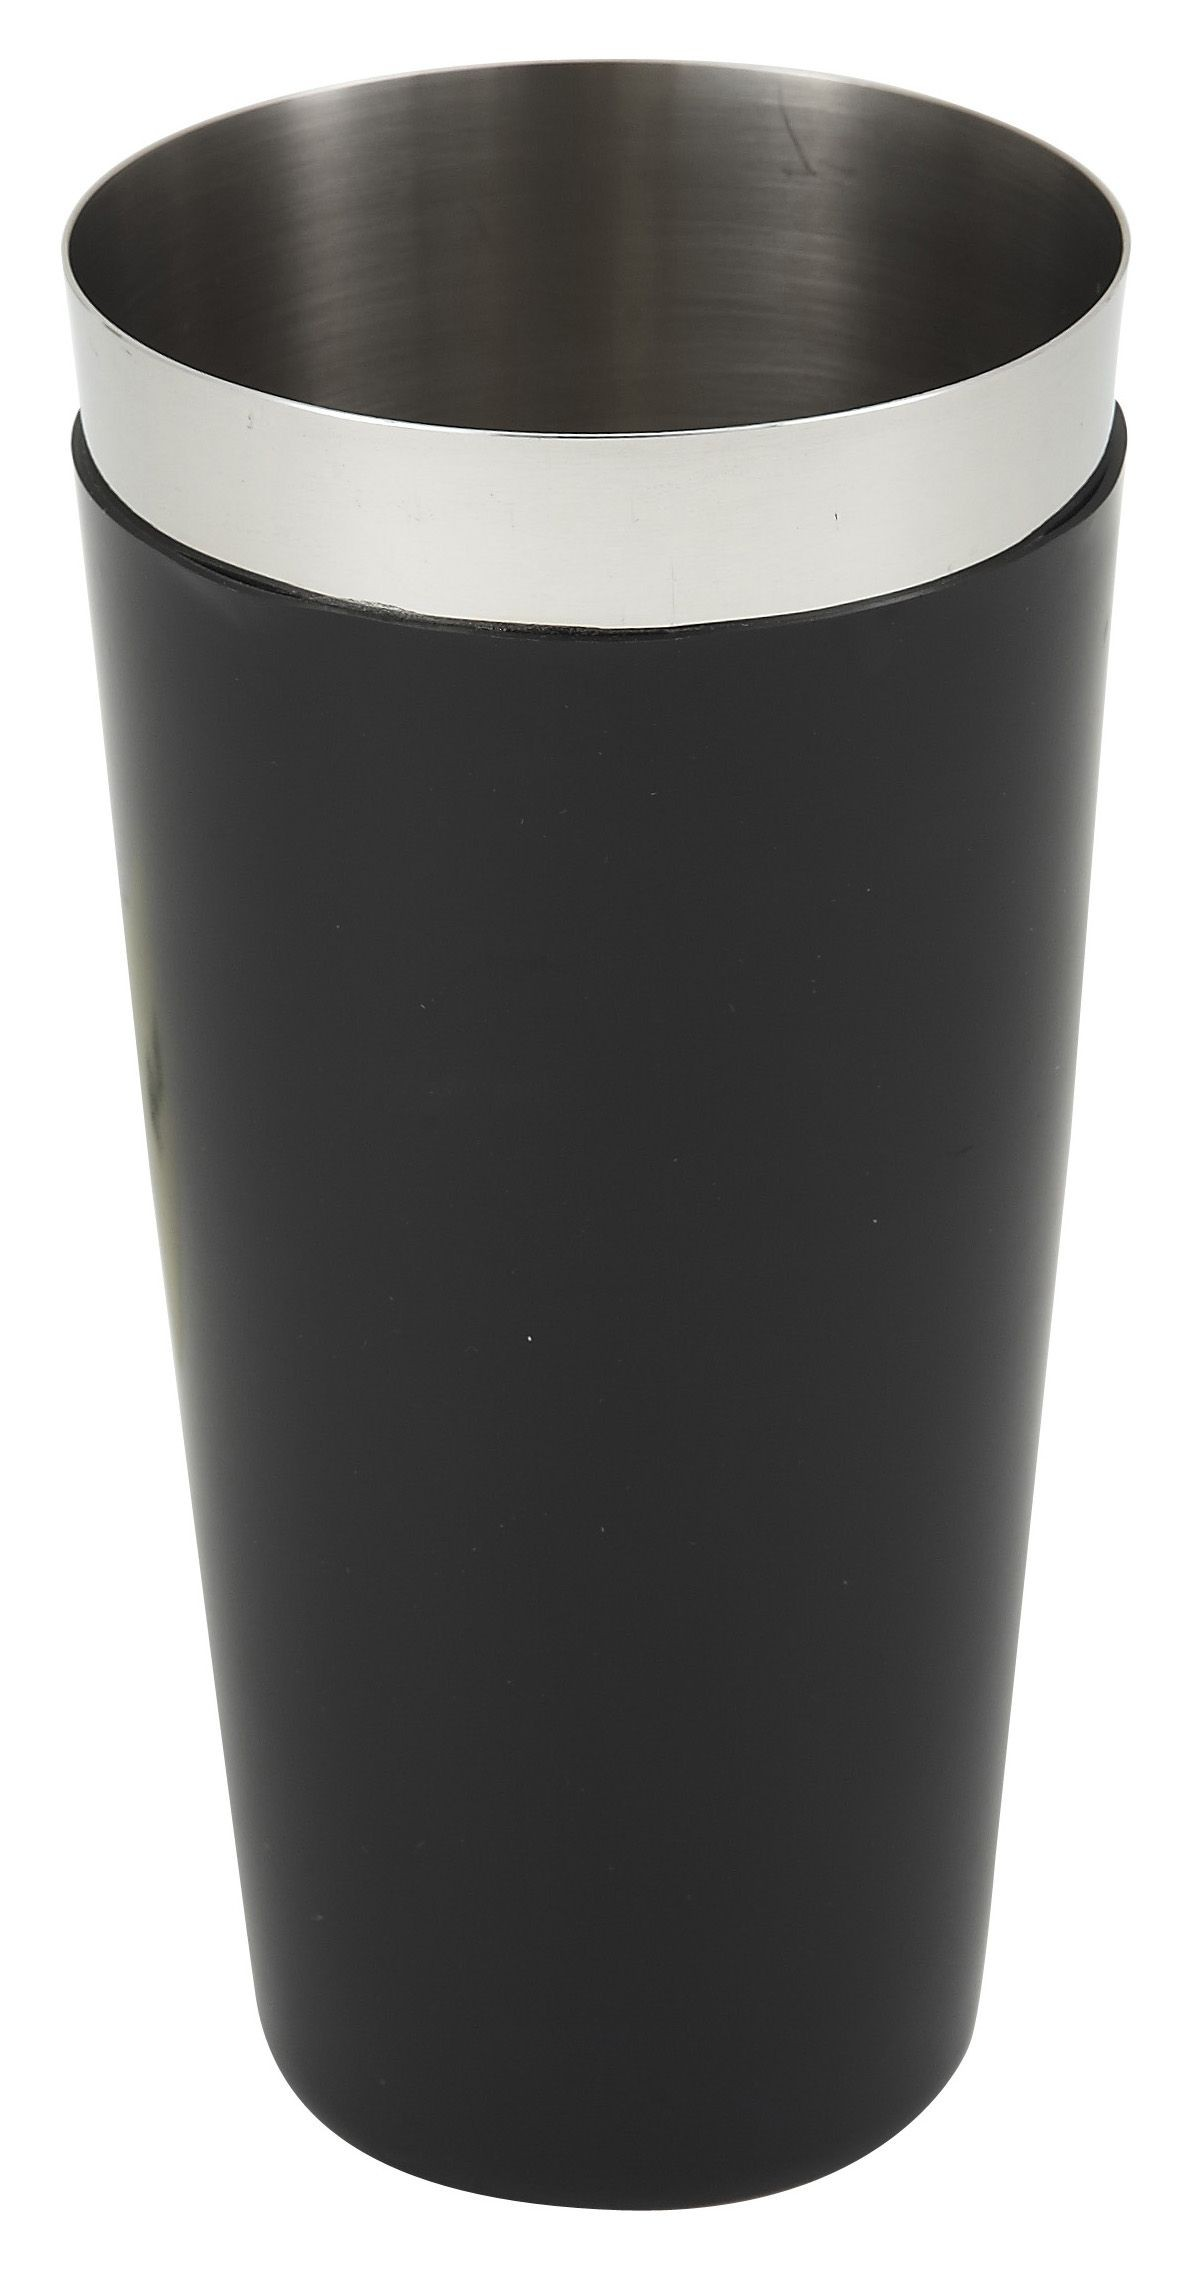 Winco BS-28P Stainless Steel 28 oz. Bar Shaker with Black PVC Coating